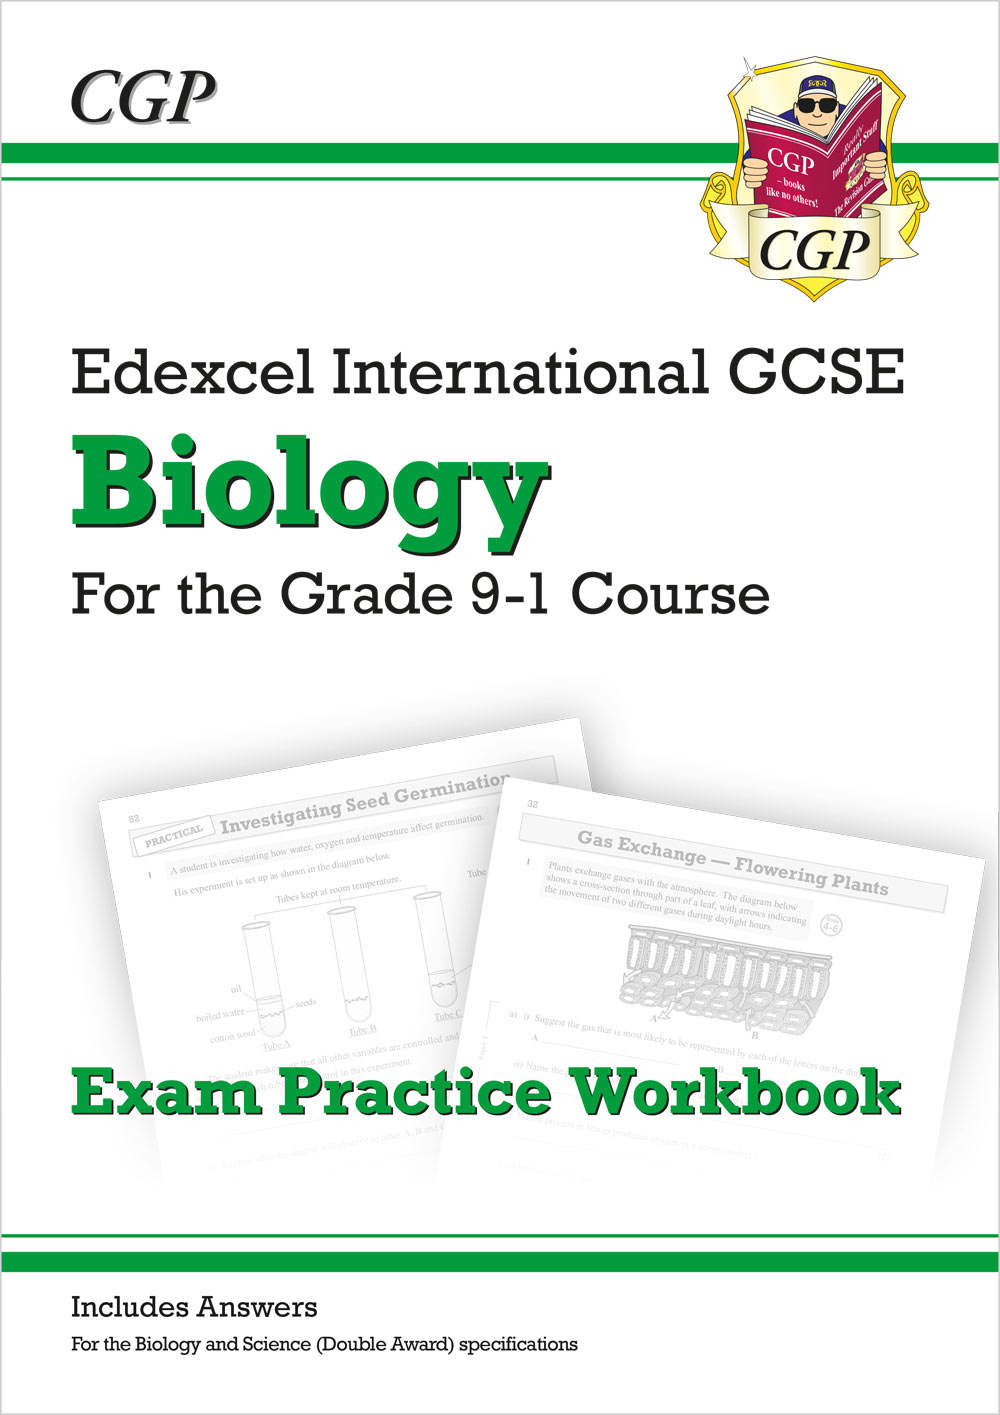 BEQI42 - Grade 9-1 Edexcel International GCSE Biology: Exam Practice Workbook (includes Answers)